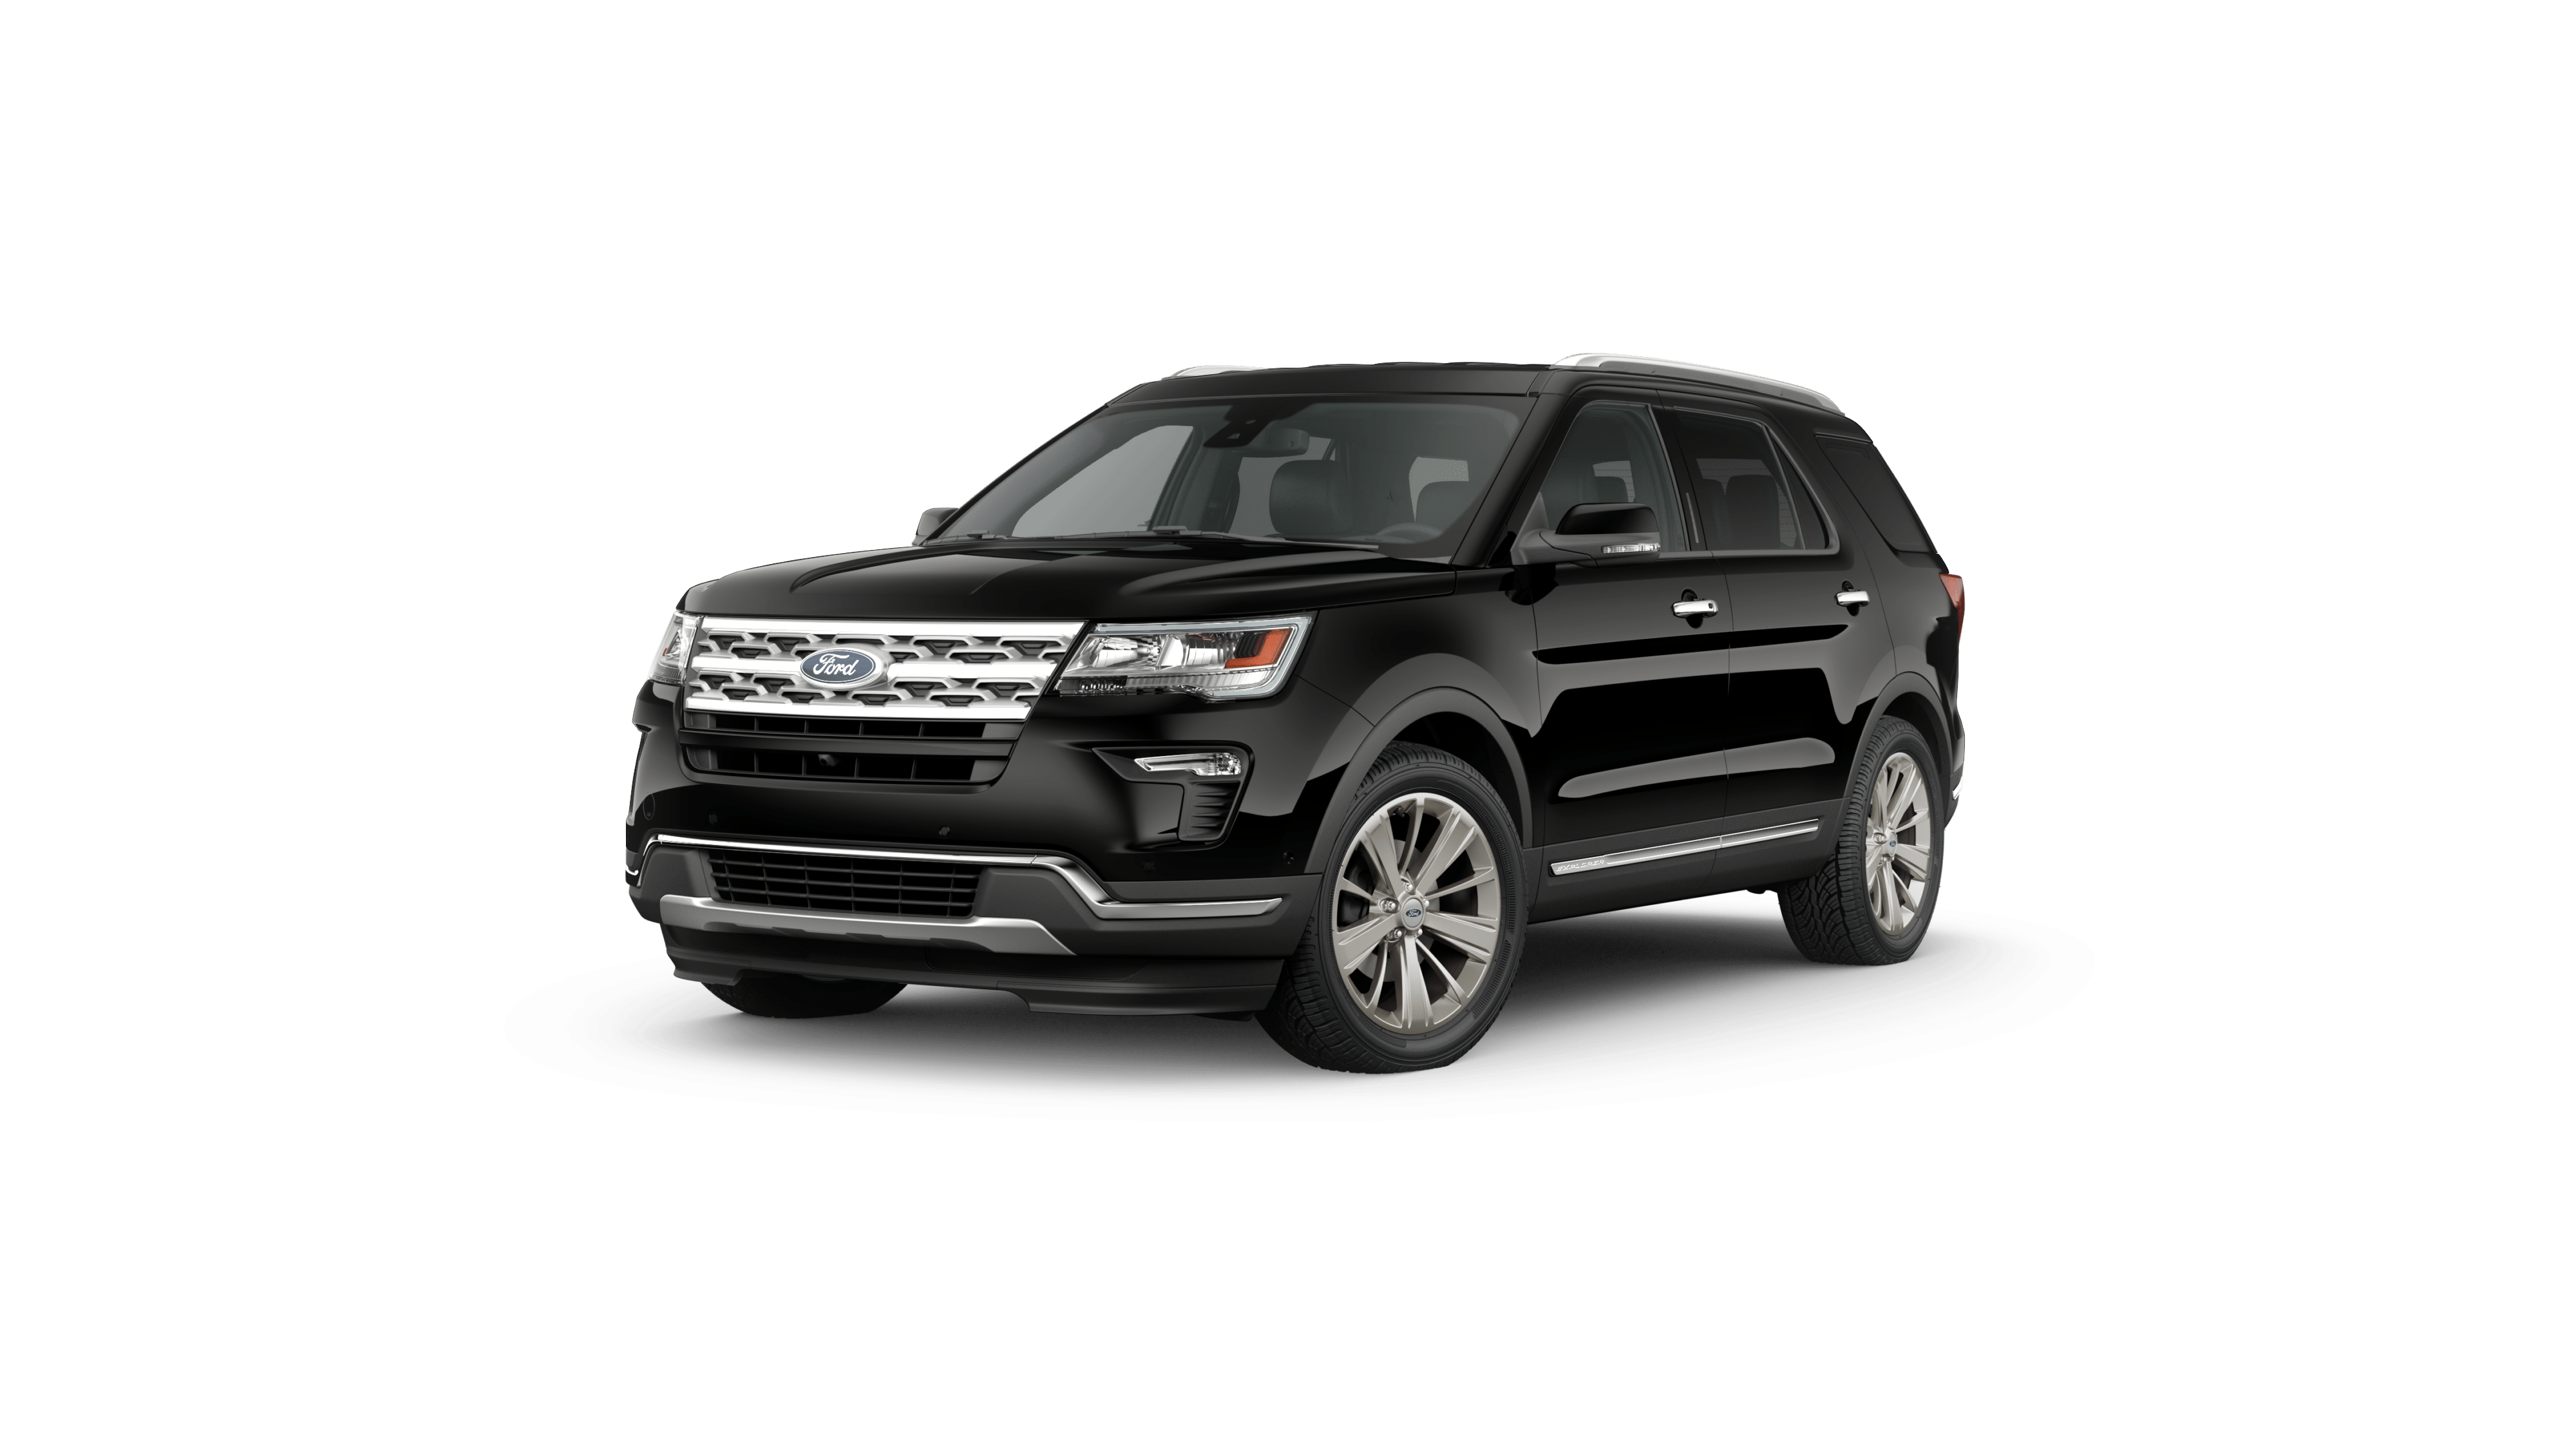 2018 Ford Explorer Vehicle Photo in Souderton, PA 18964-1038